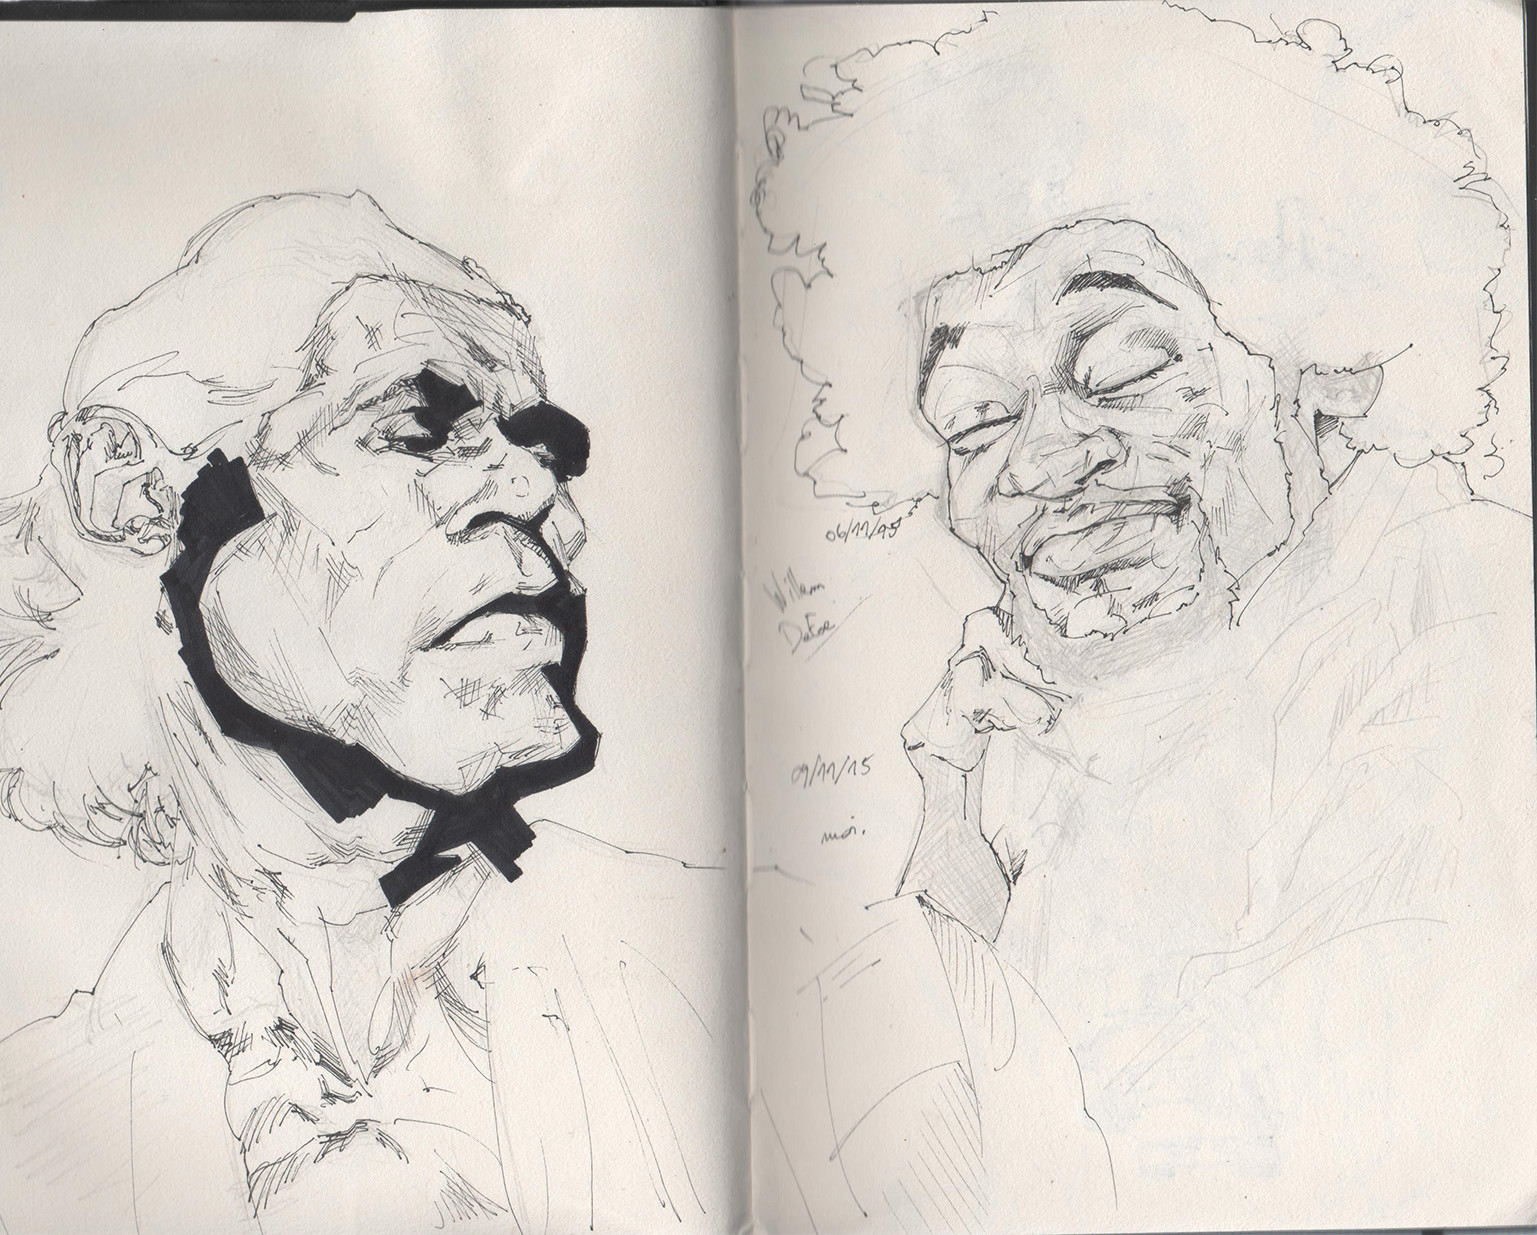 Tony gbeulie post sketch1